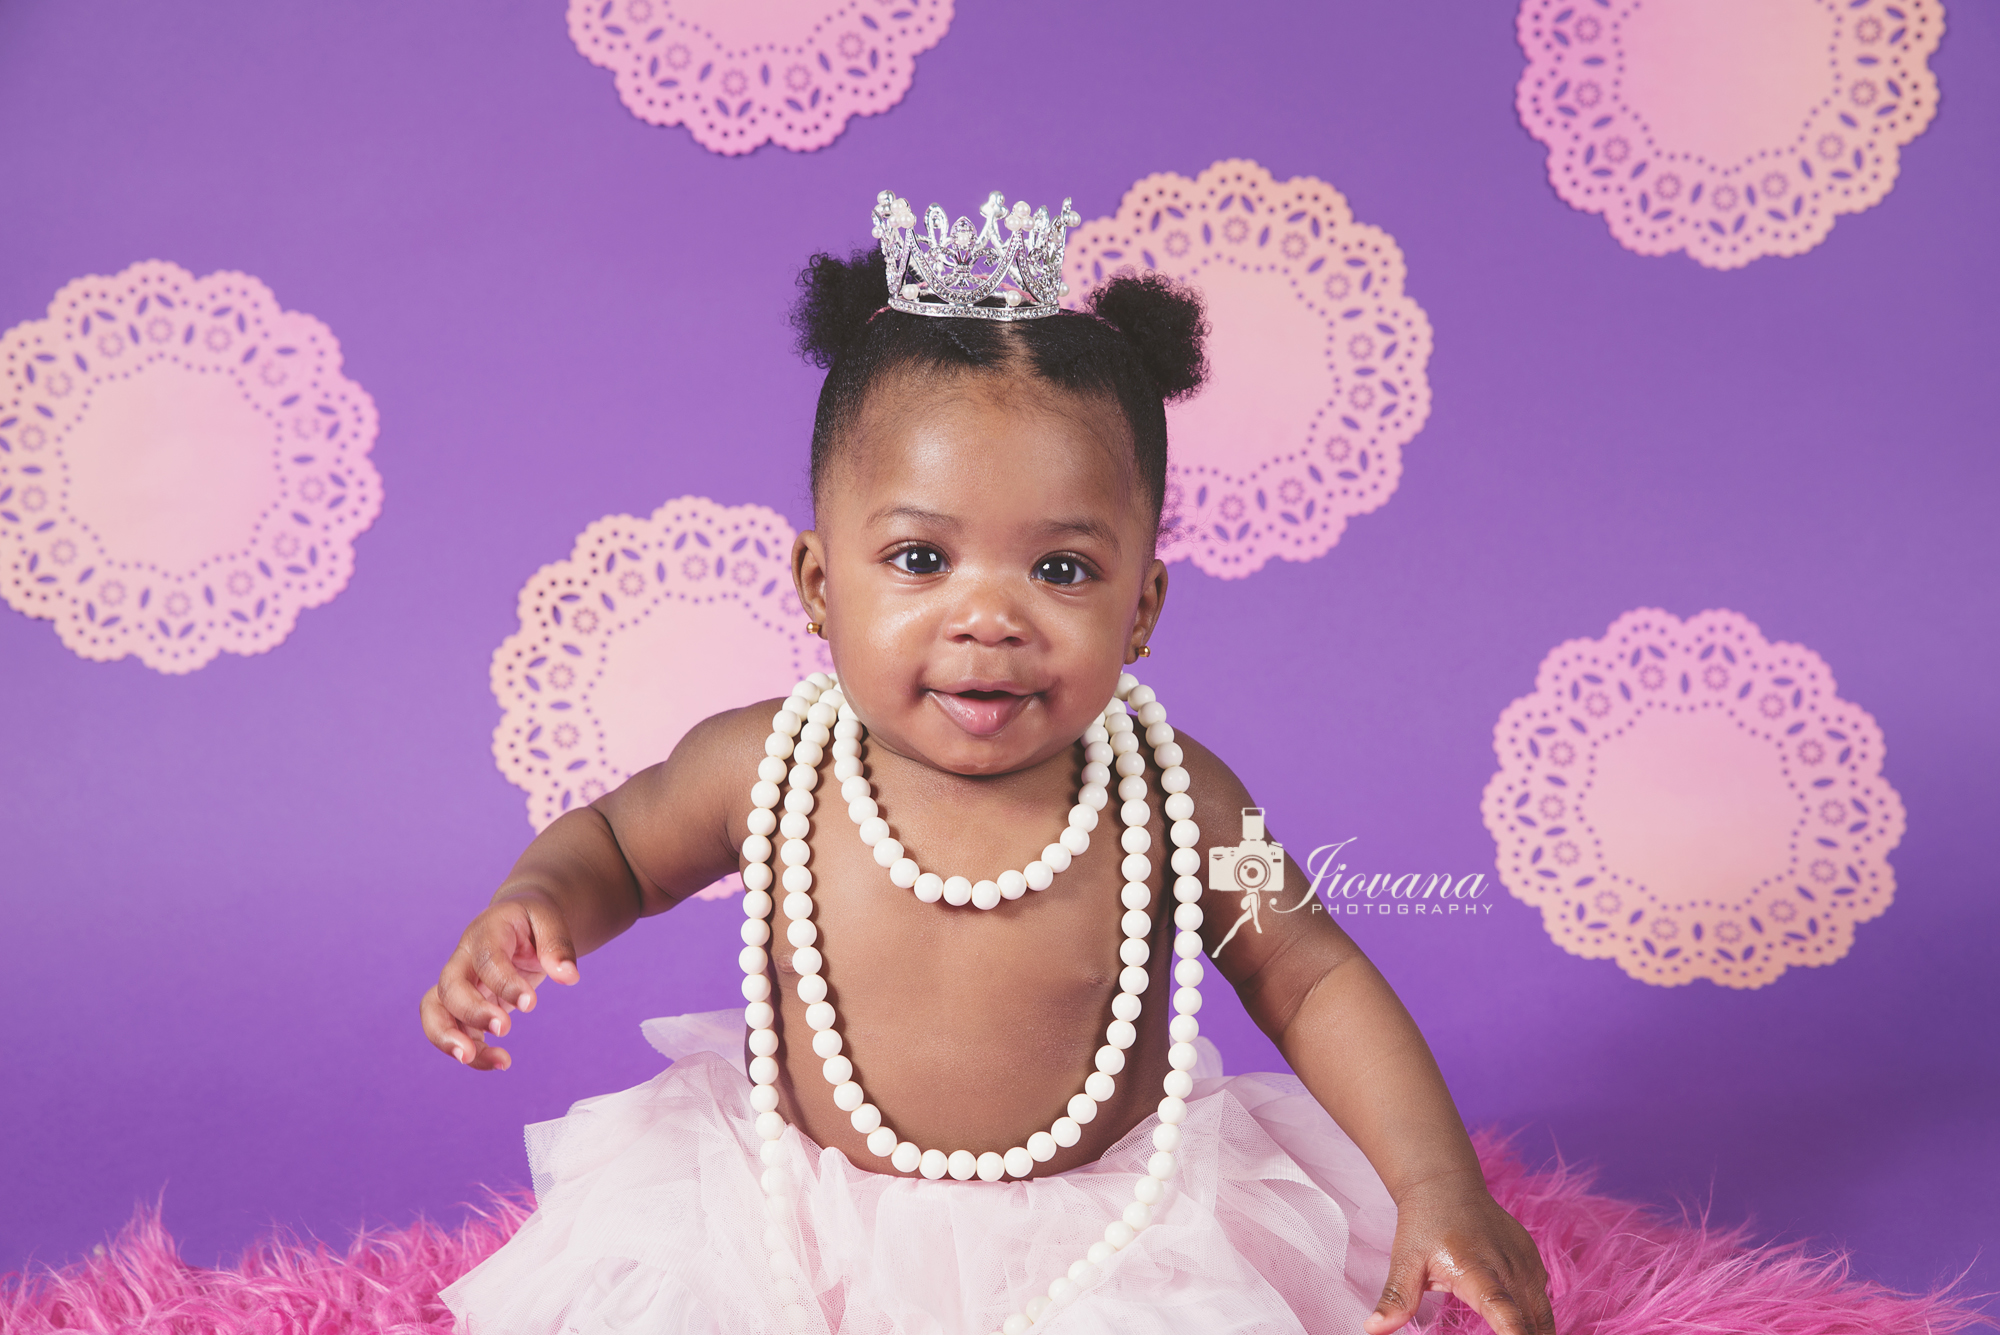 Las Vegas Children Photography 6 Month Old Session Jiovana